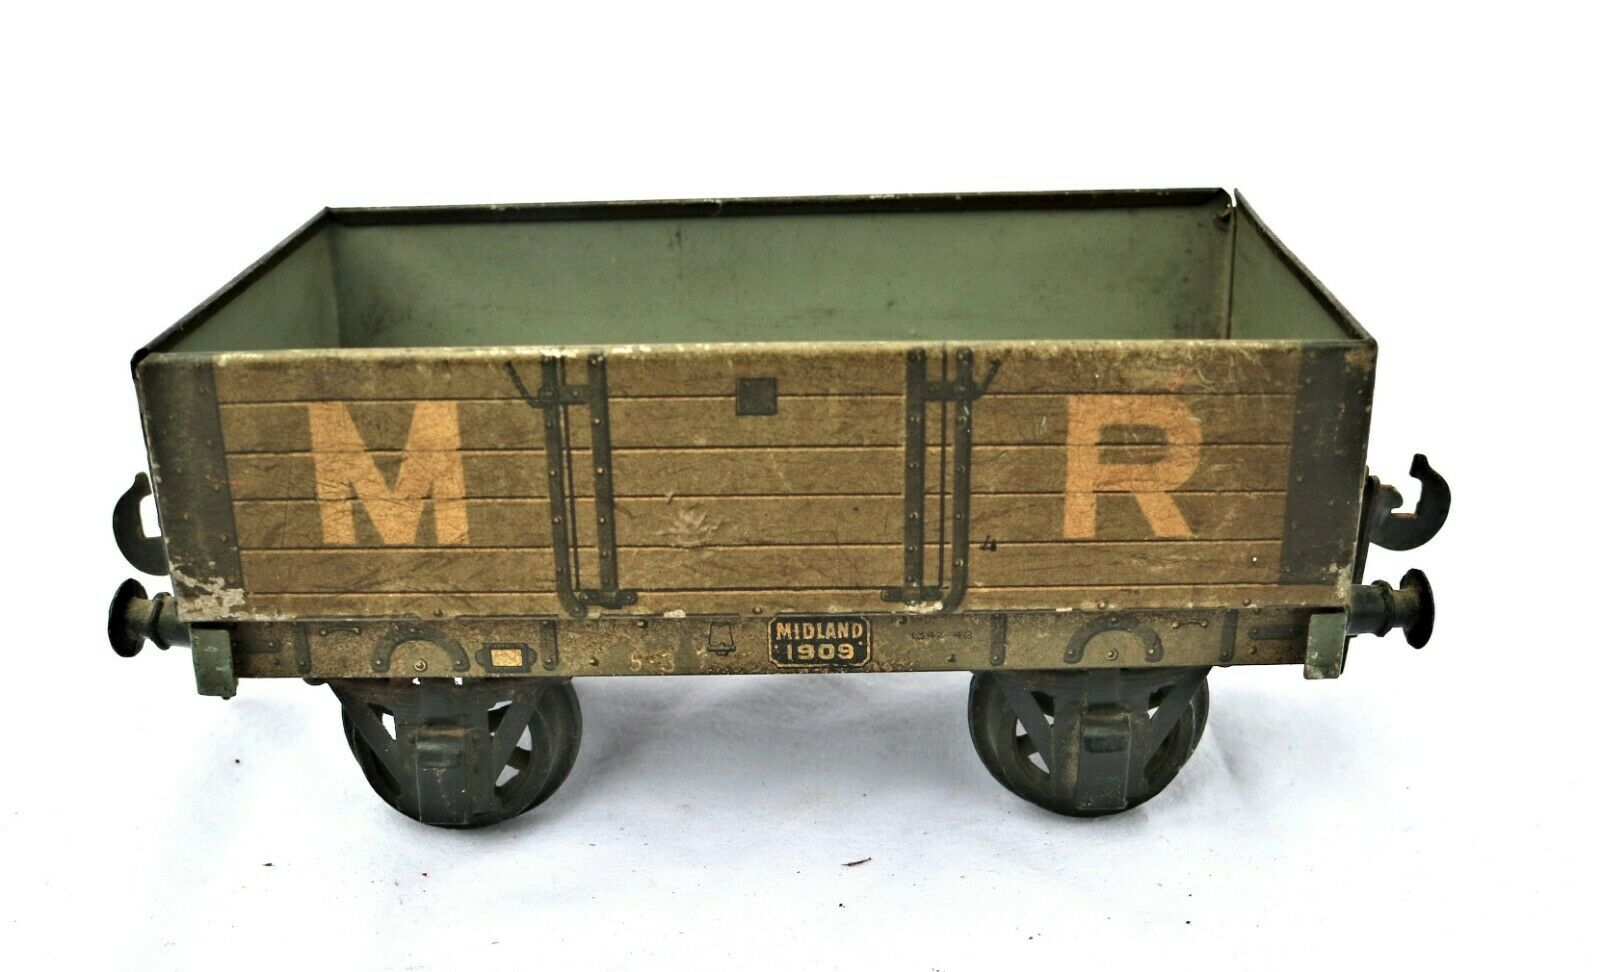 G63B Vintage Carette O Gauge MR Open Wagon No.1909 Cat. No. 1342-48